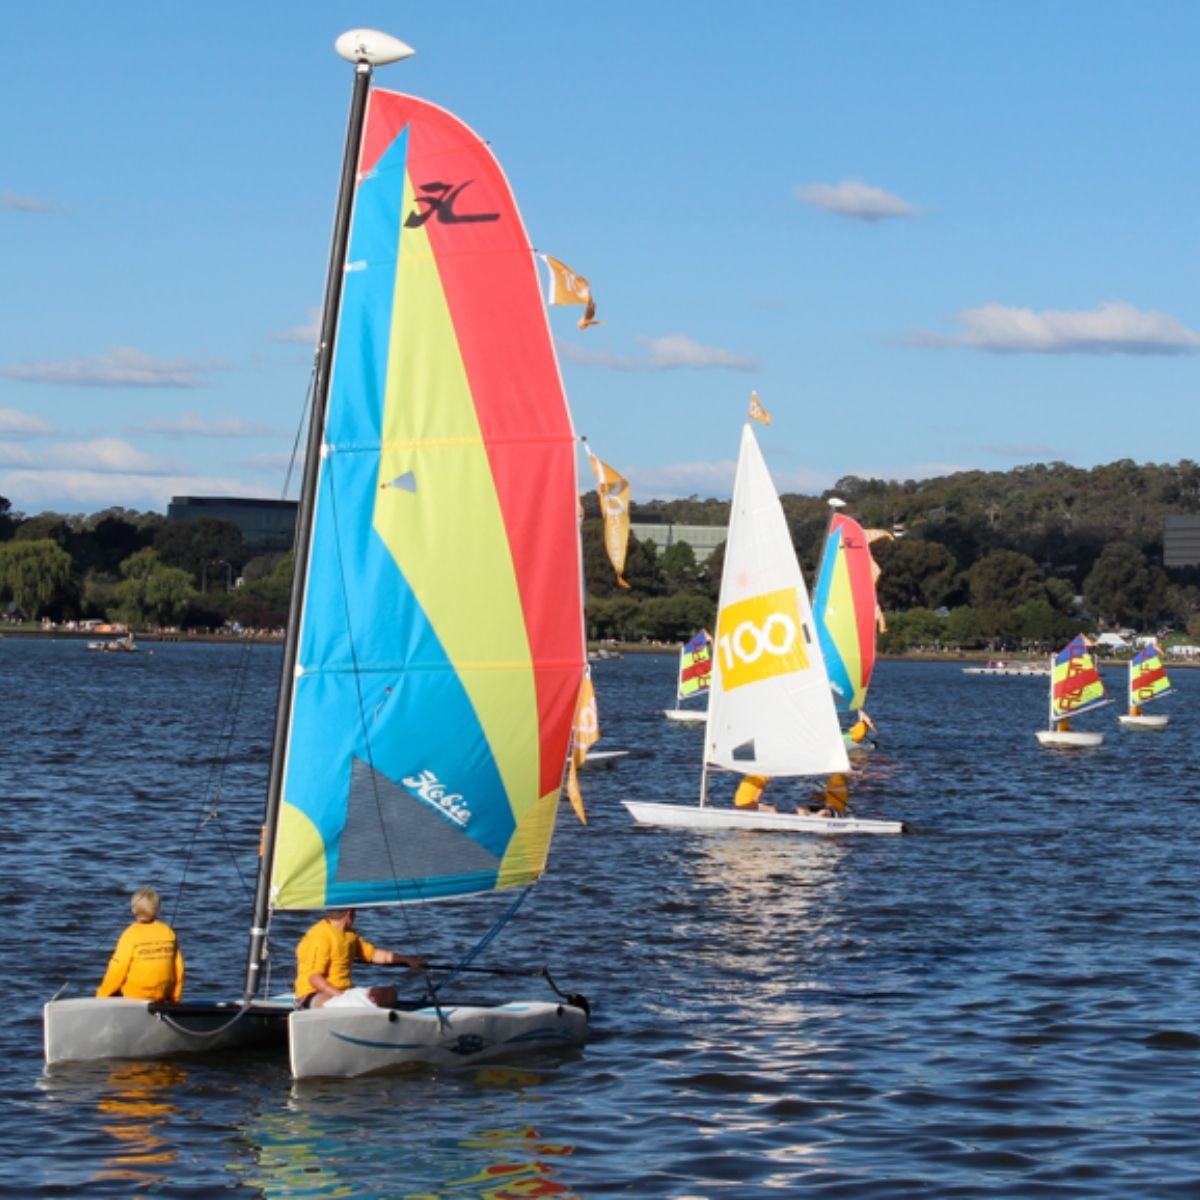 southern cross cruise yacht club canberra lake burley griffin sightseeing tour short term holiday accommodation canbhol